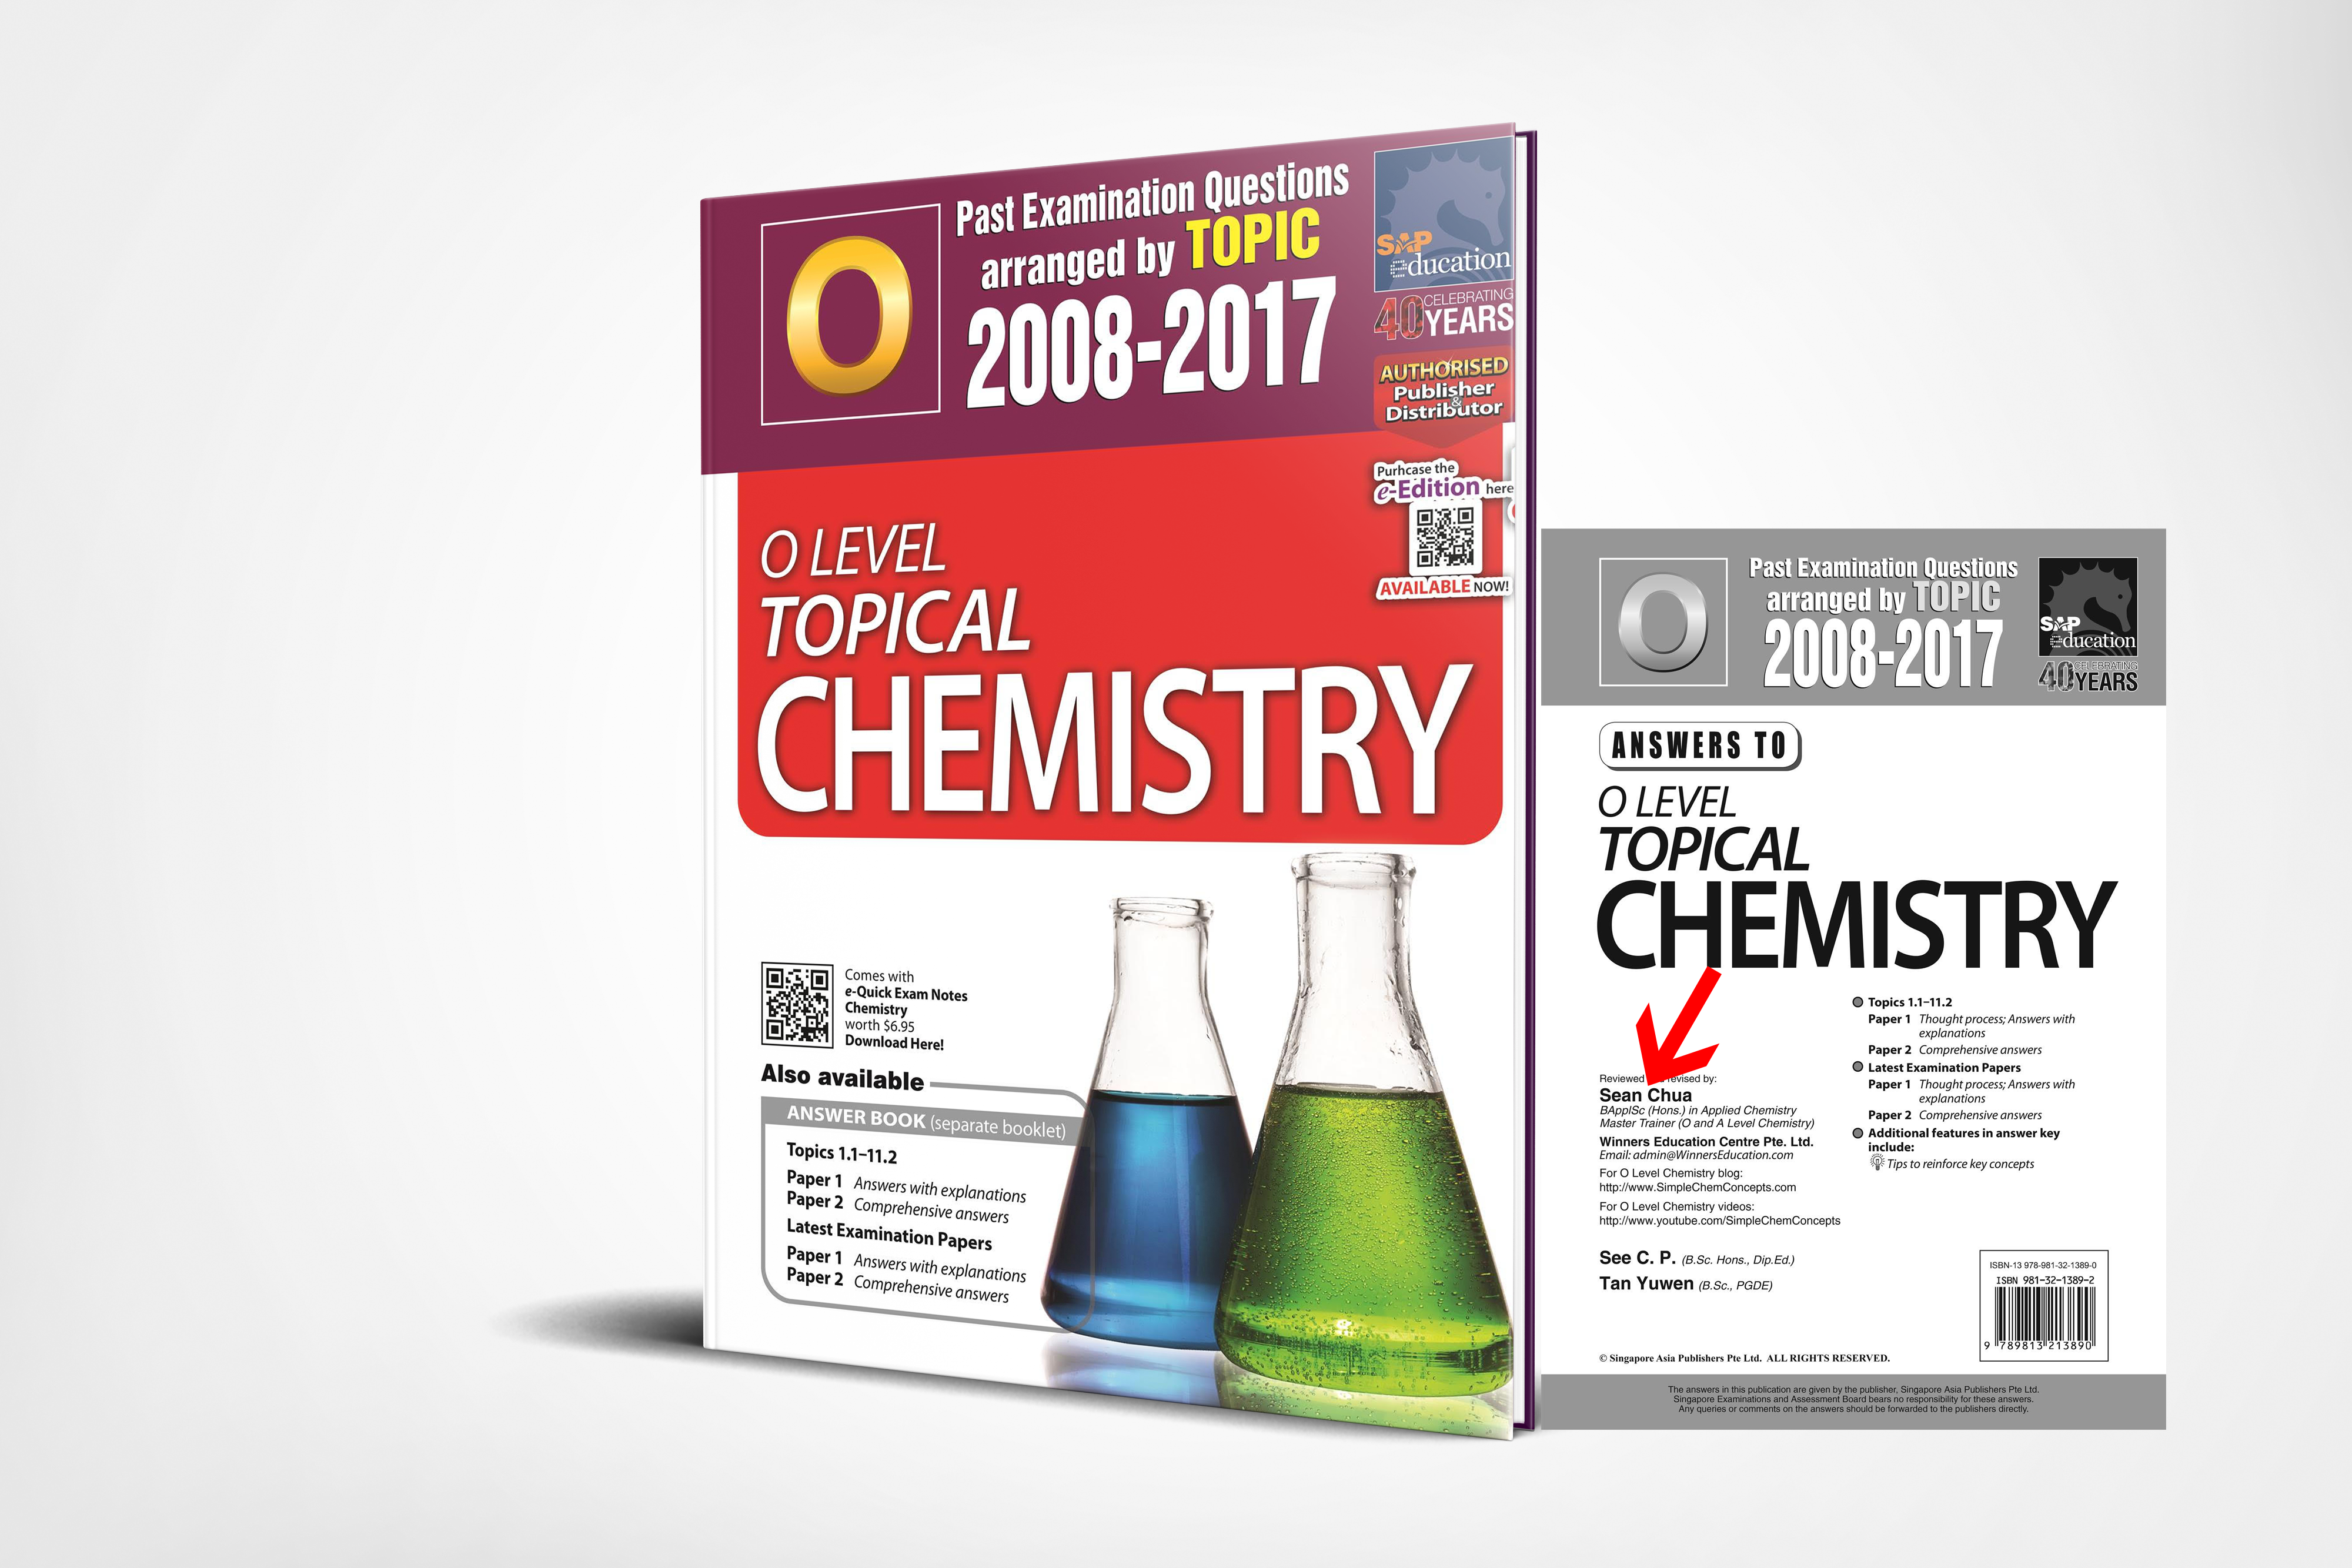 Master o level organic chemistry in 2 days simplechemconcepts available in all popular bookstores buy a copy today up your chemistry grades go to top fandeluxe Choice Image